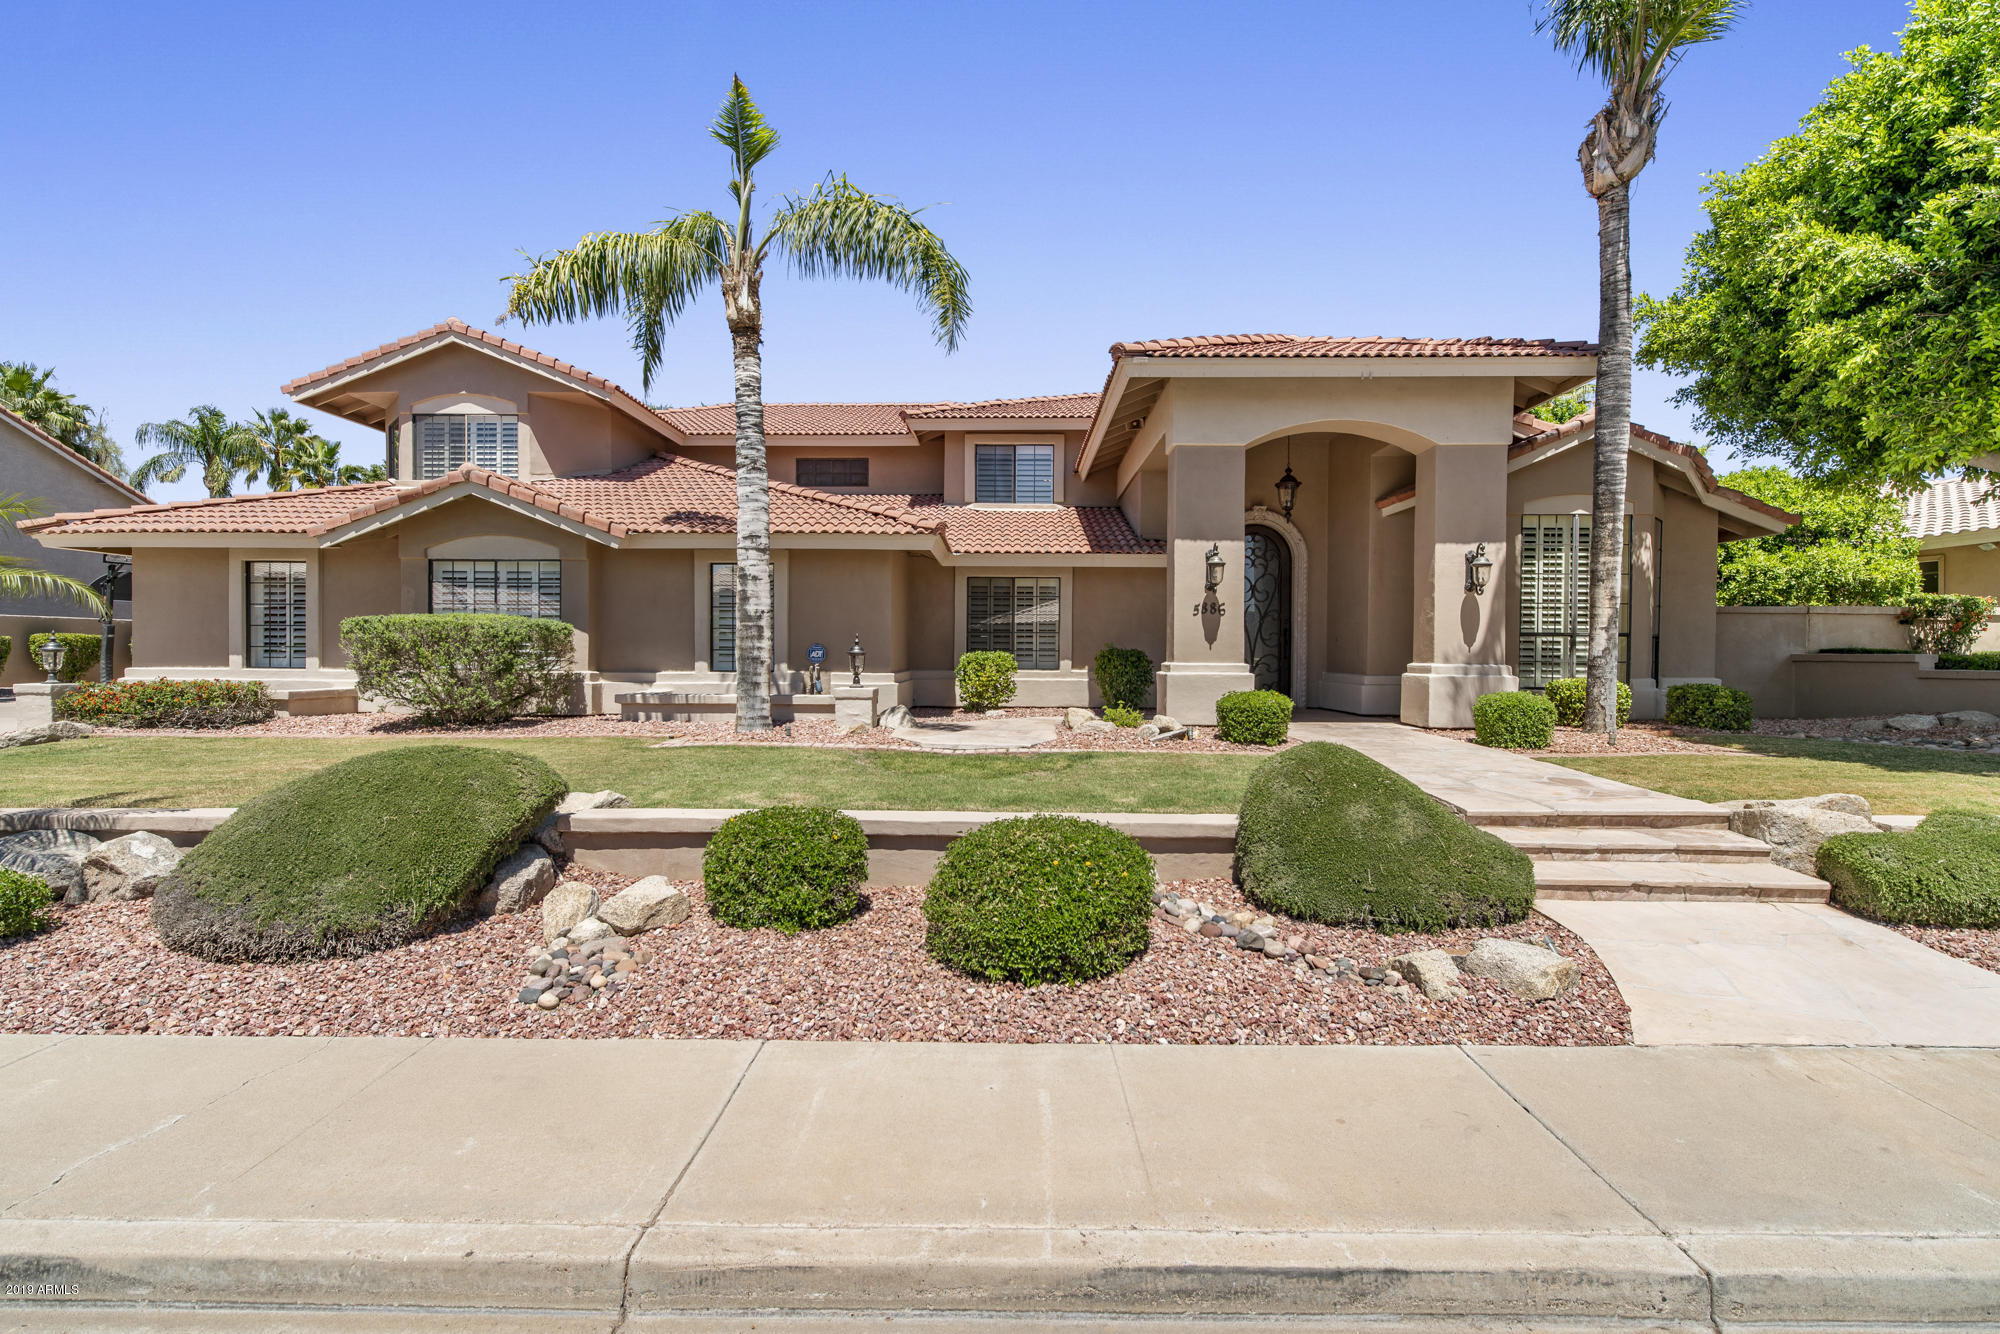 Photo of 5886 W DEL LAGO Circle, Glendale, AZ 85308